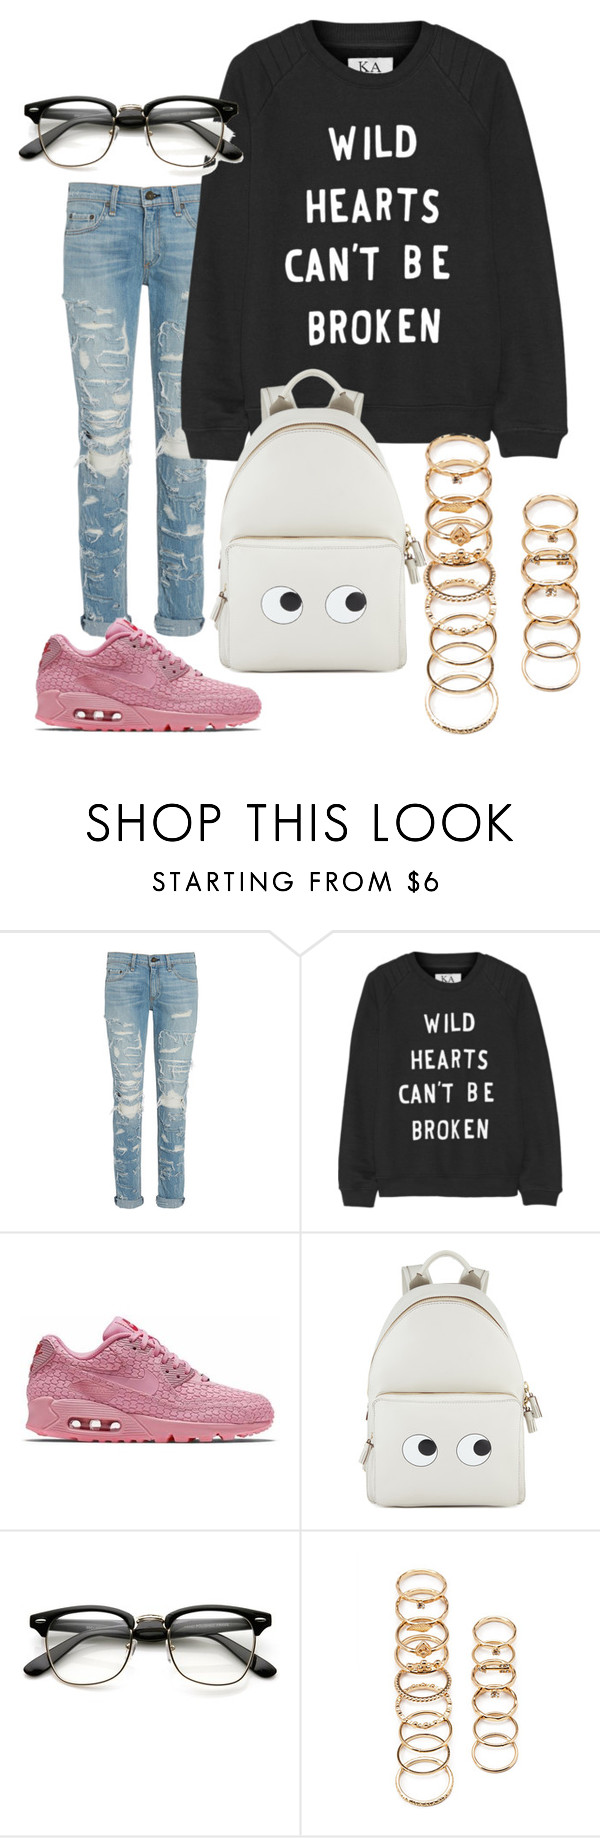 """""""Untitled #22"""" by madison2486 ❤ liked on Polyvore featuring rag & bone, Zoe Karssen, NIKE, Anya Hindmarch and Forever 21"""